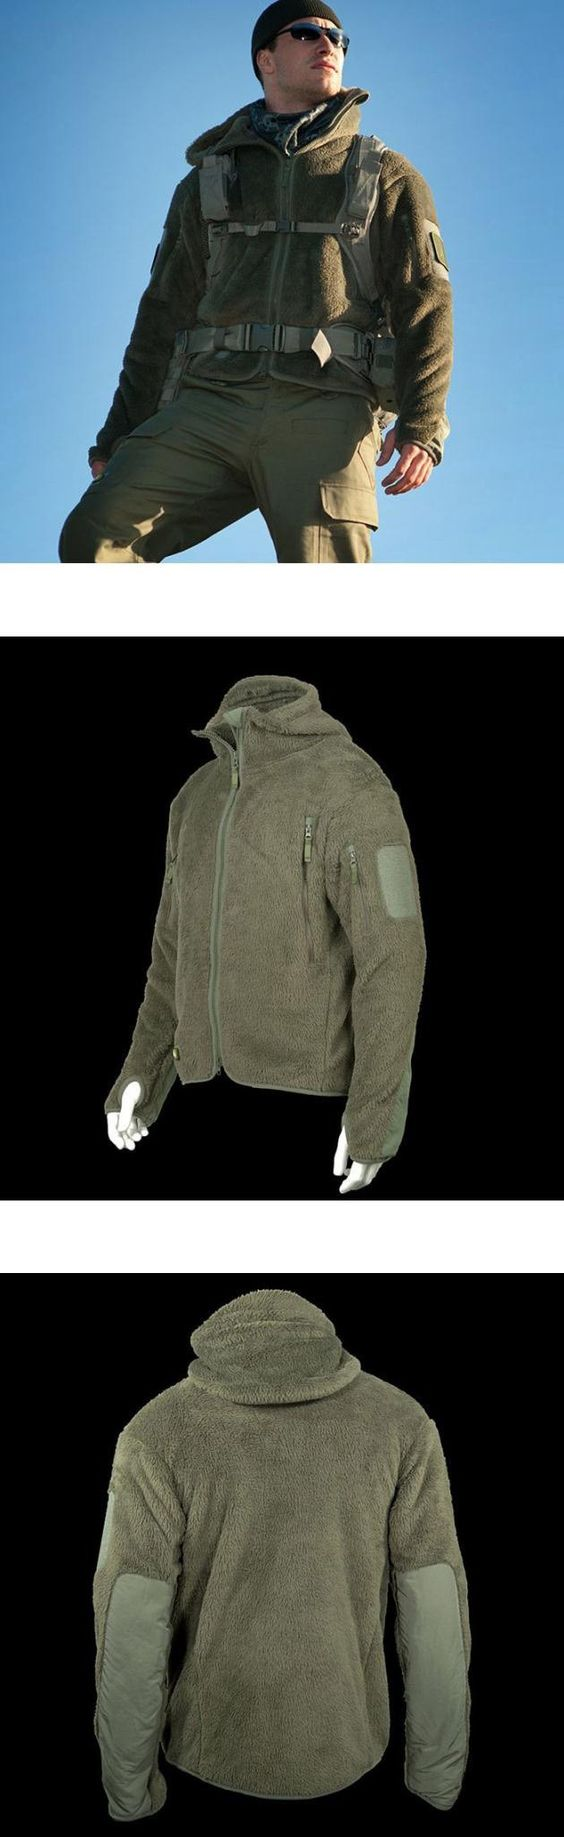 http://www.dhgate.com/product/2015-mens-outdoor-hiking-warm-military-army/250461567.html